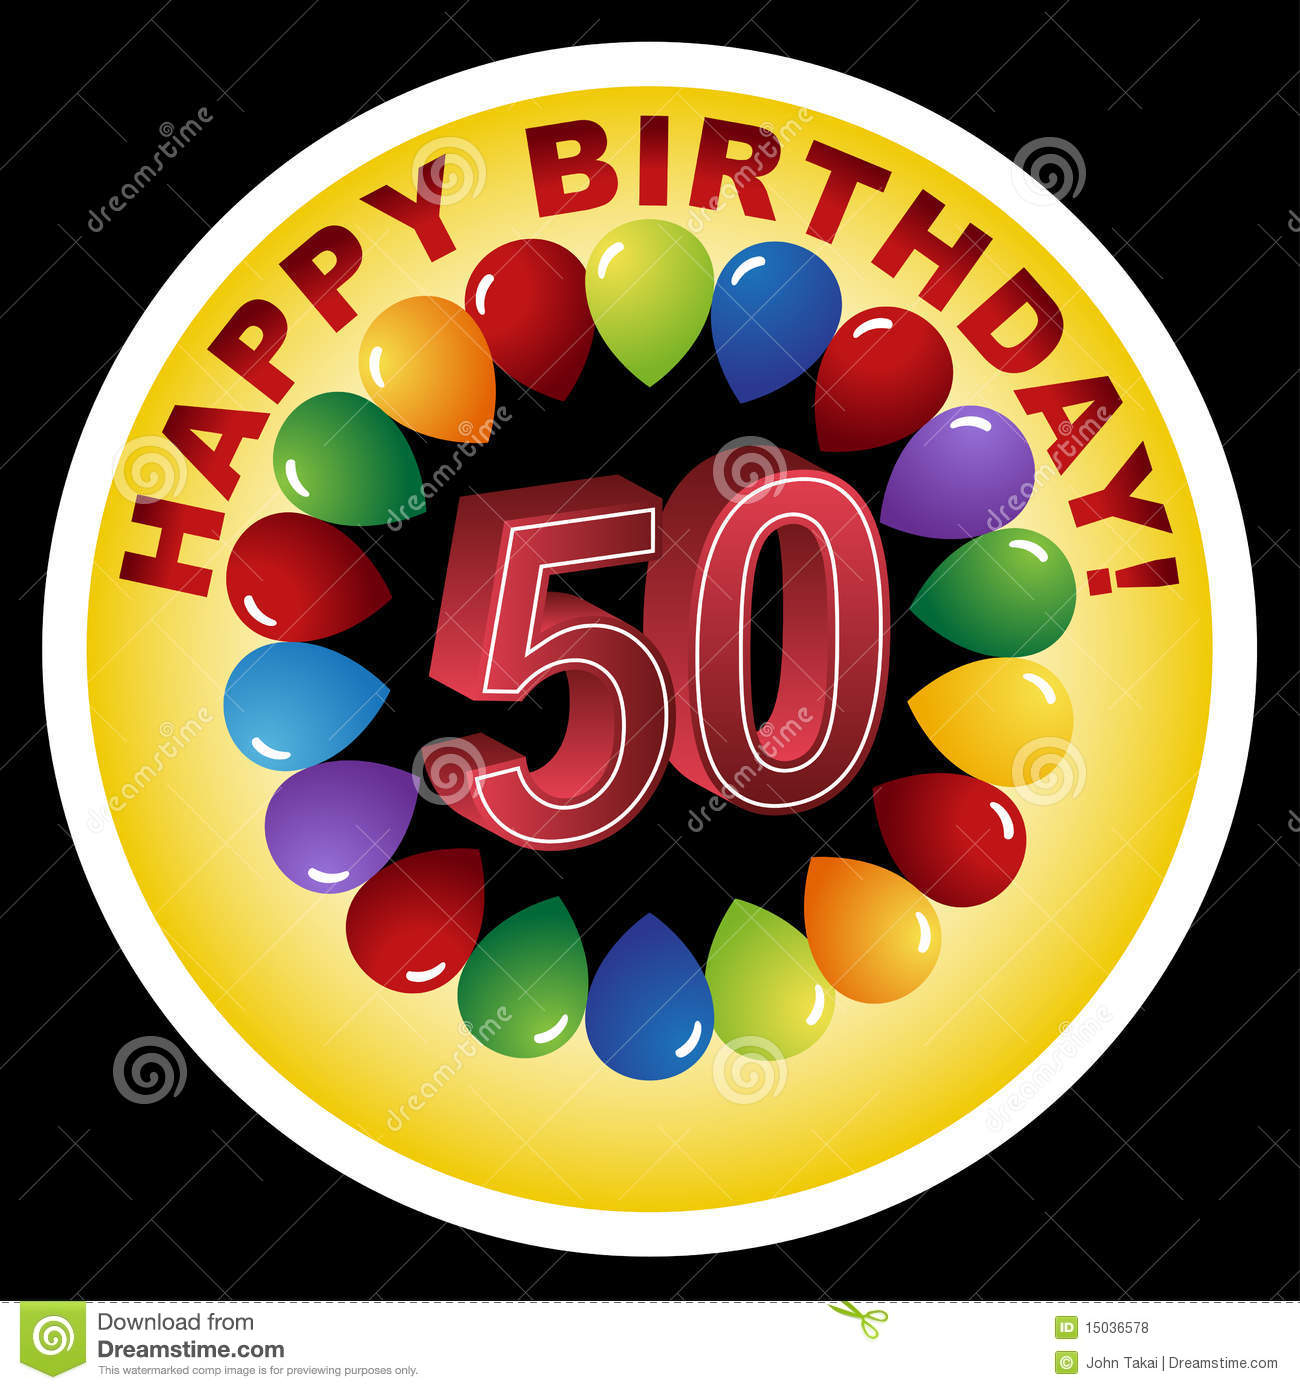 40th birthday clipart pictures ; free-happy-50th-birthday-clip-art-3